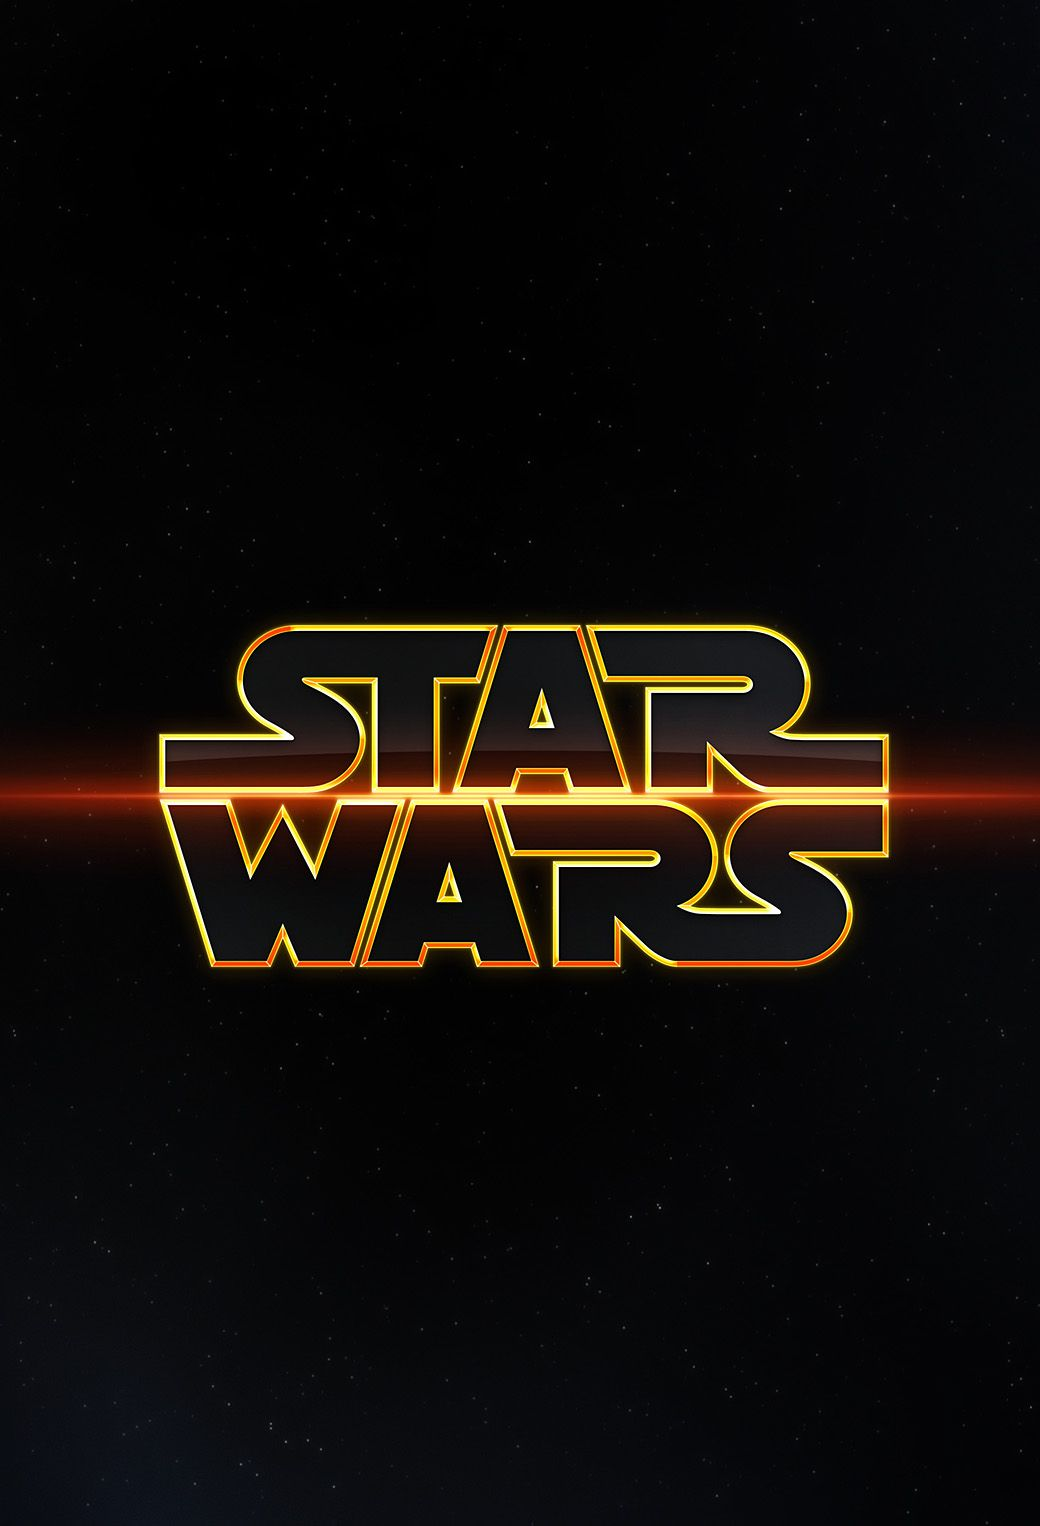 71 Star Wars Logo Wallpaper On Wallpapersafari